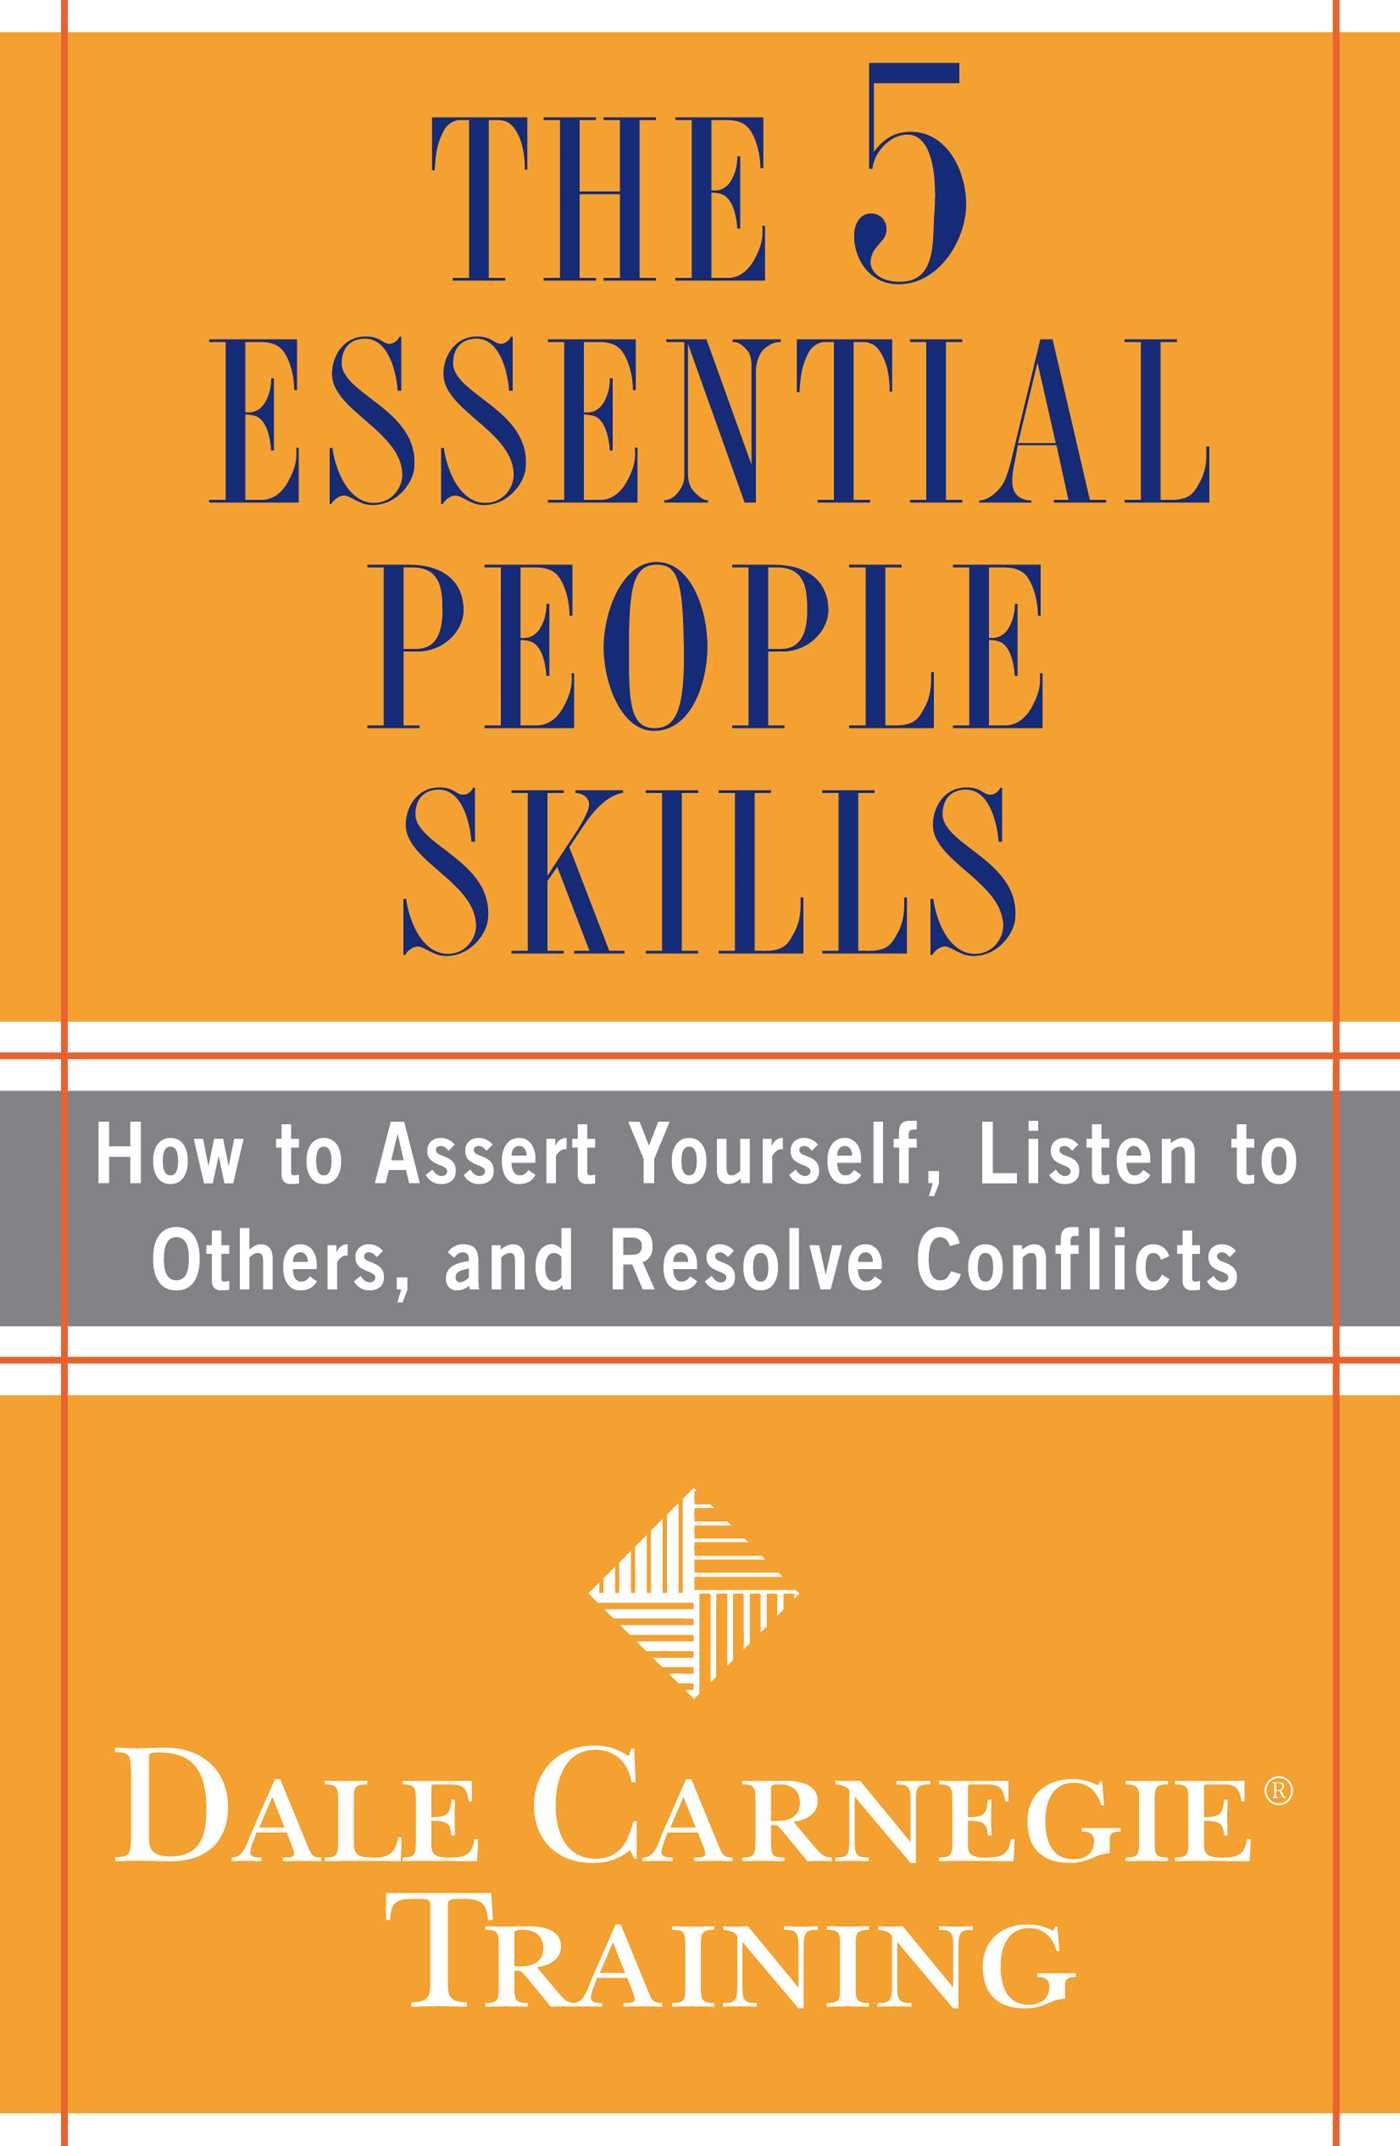 The 5 Essential People Skills How to Assert Yourself, Listen to Others, and Resolve Conflicts